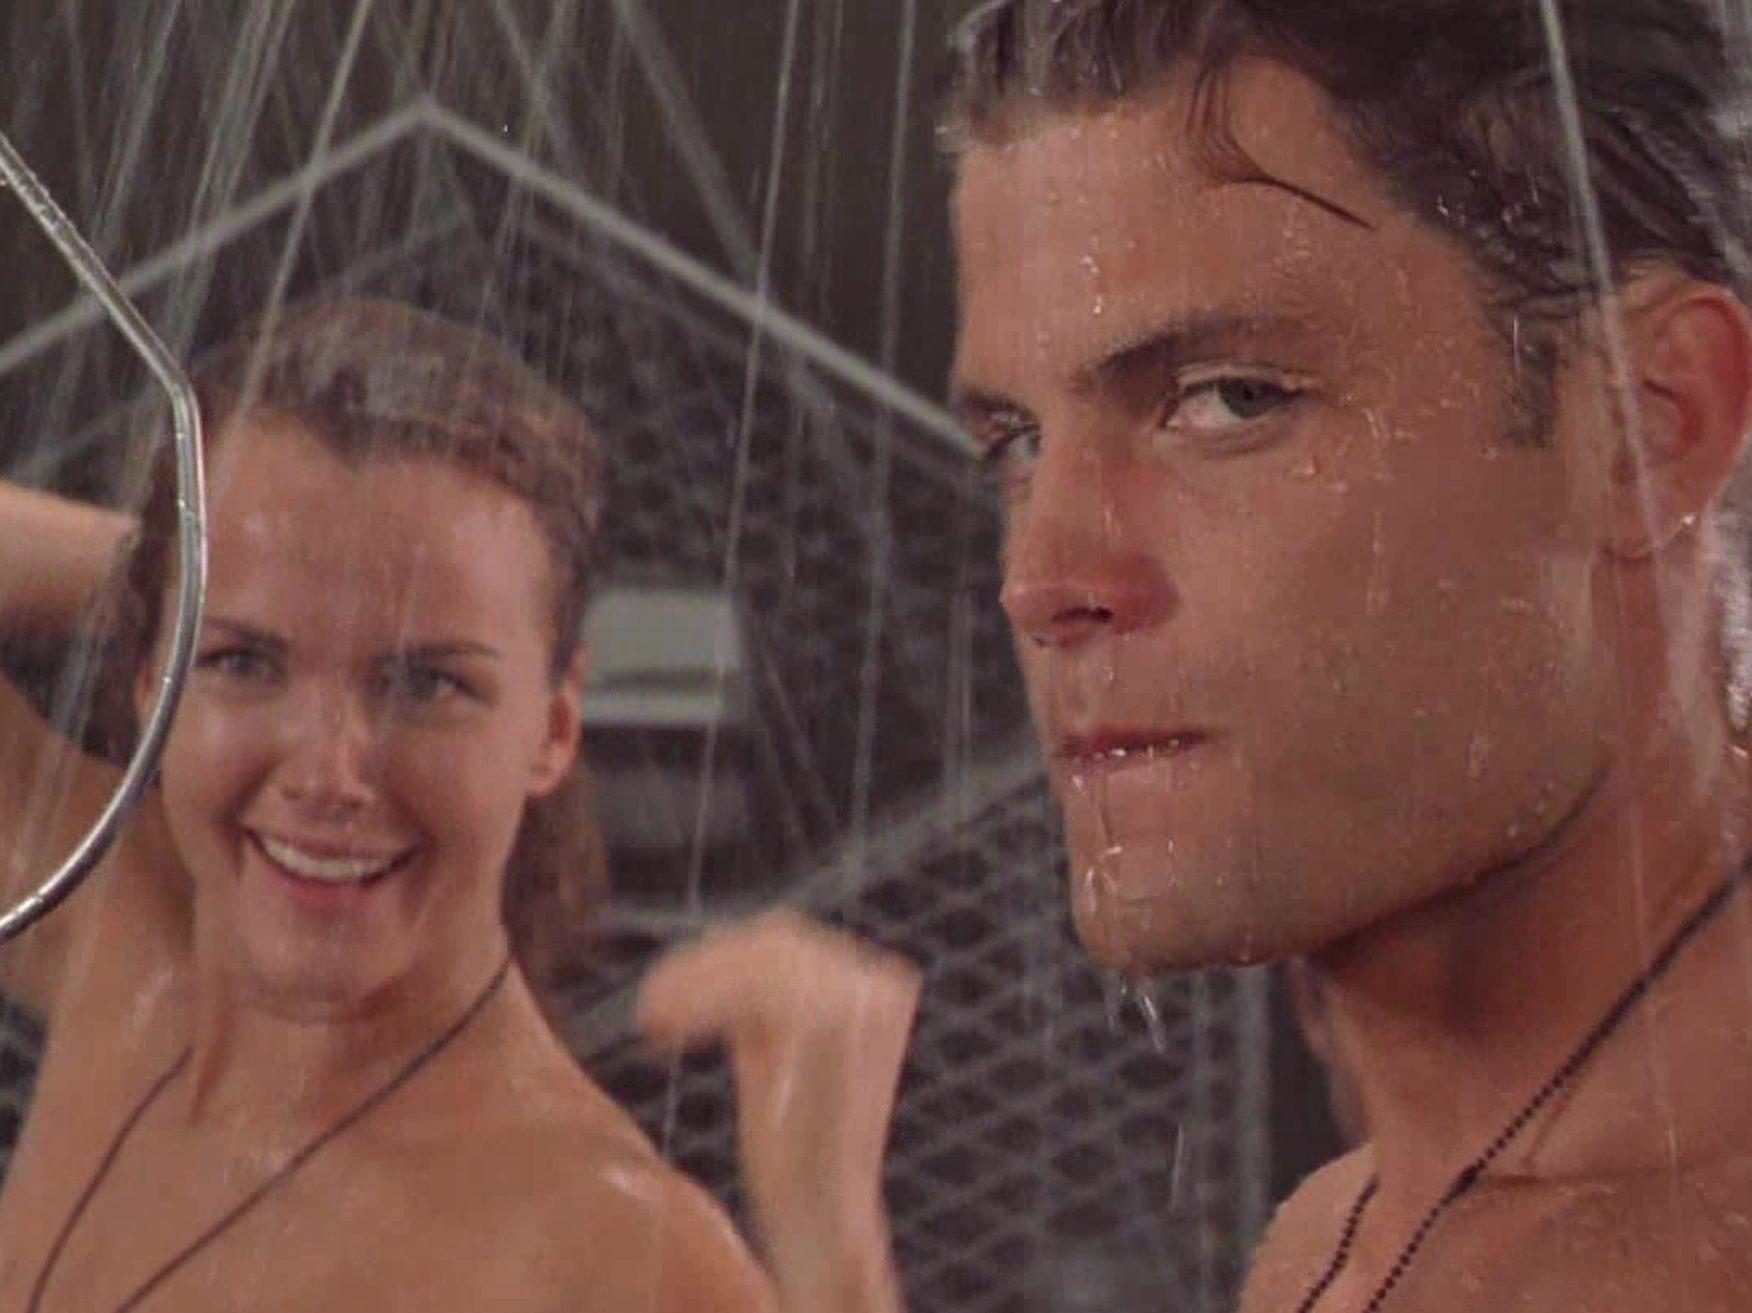 StarshipTroopers 1 e1621519831111 Mark Wahlberg Almost Starred, And More You Never Knew About Starship Troopers